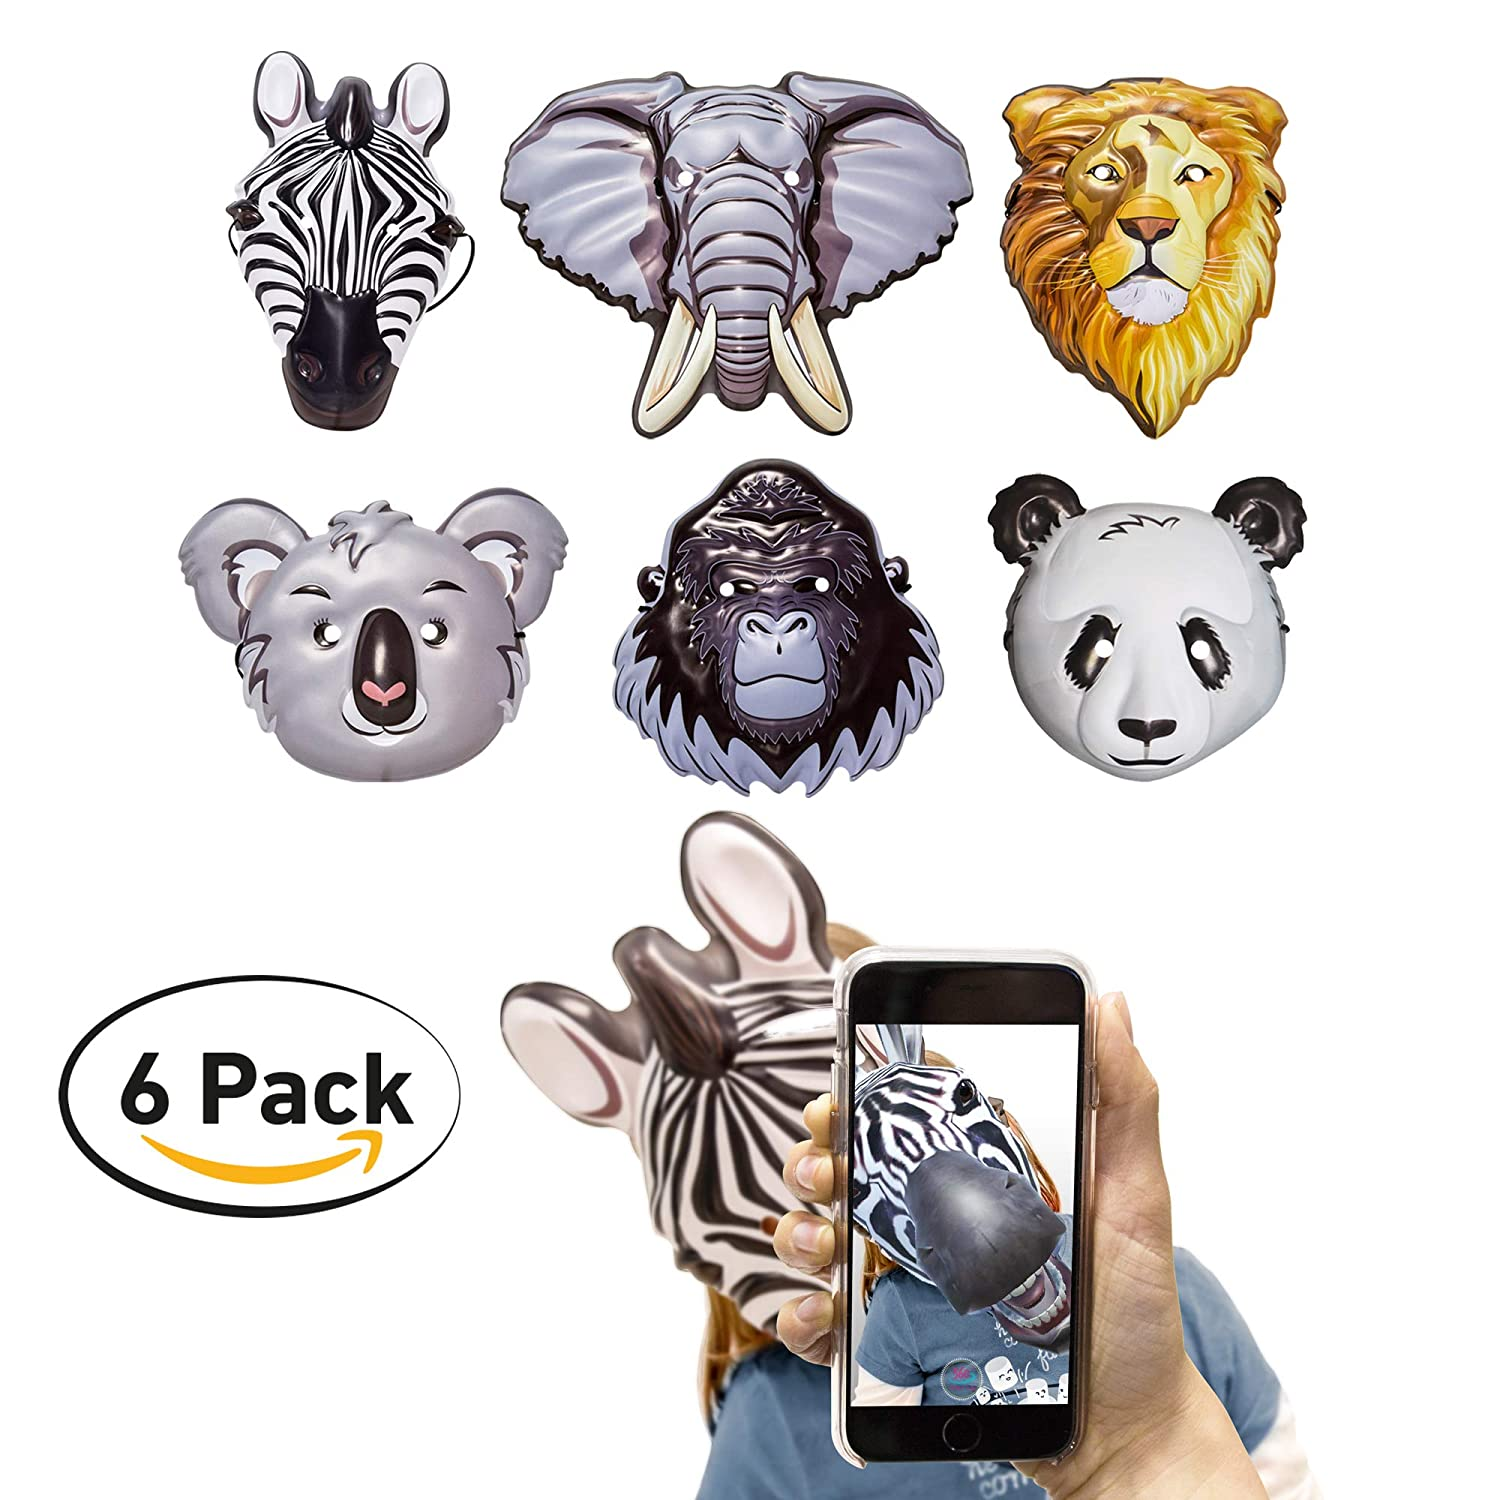 360 Party Lab Kids Animal Masks Augmented Reality 6 Pack Zebra Elephant Gorilla Koala Lion Panda Bear